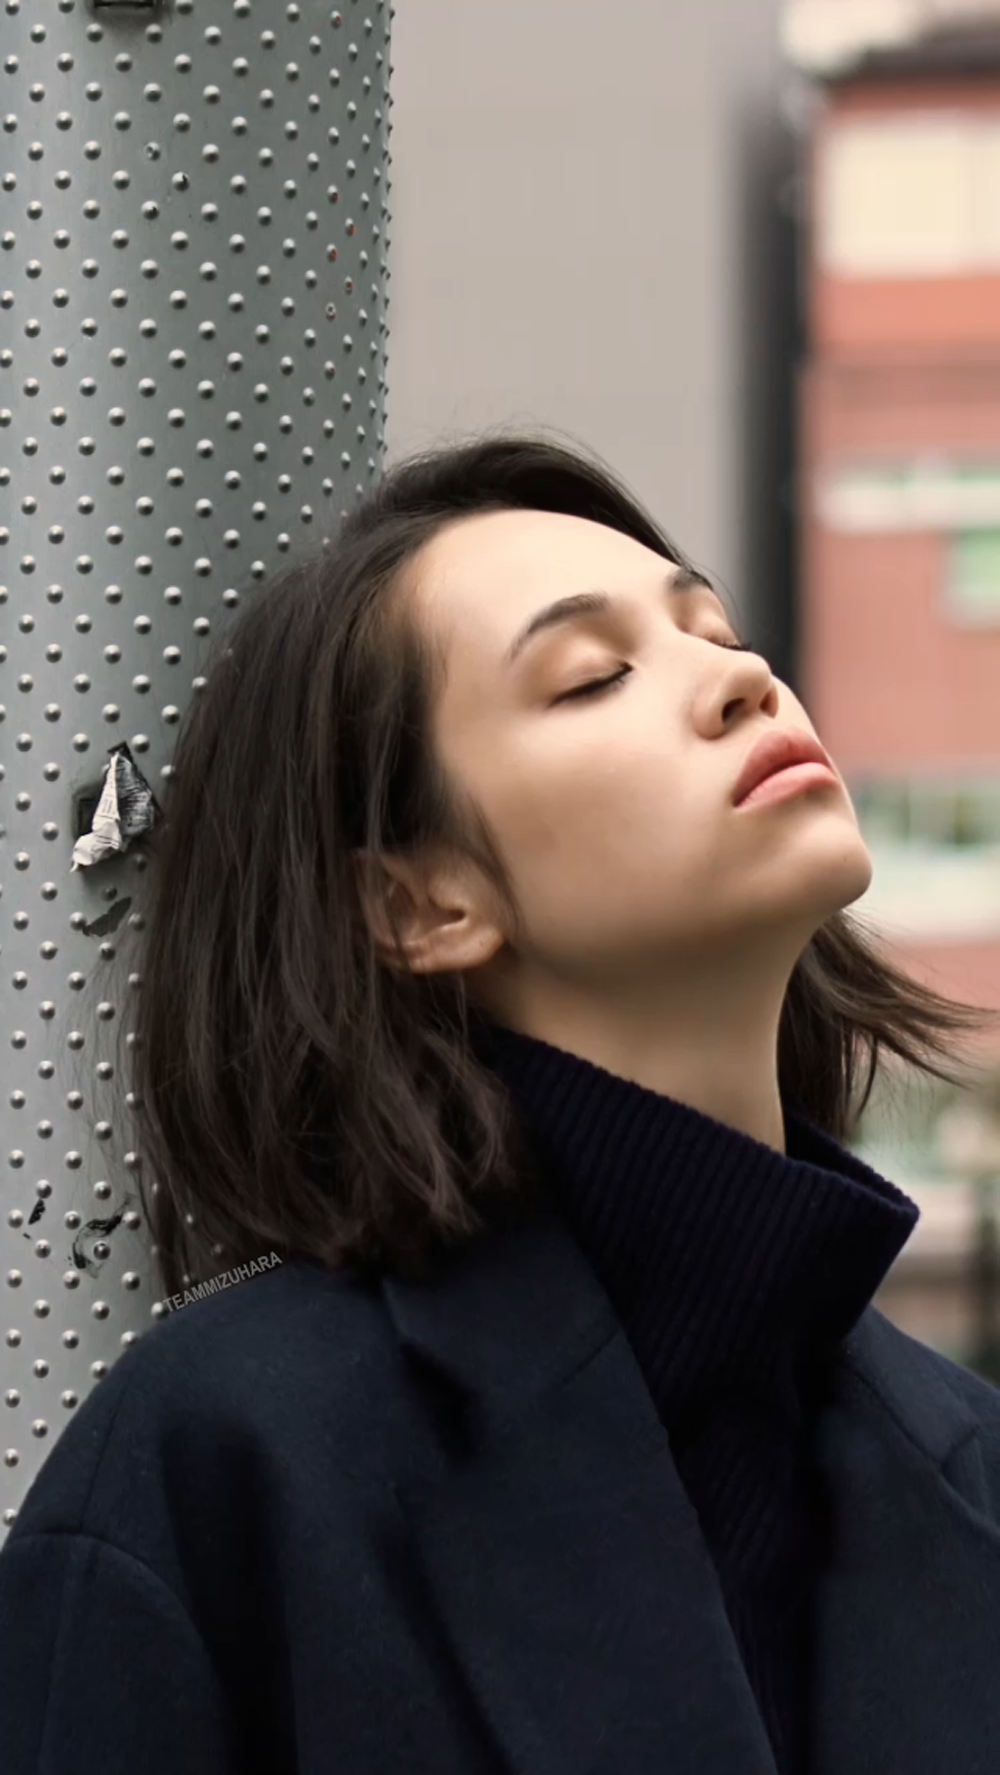 Kiko Mizuhara naked (67 foto), photo Porno, Instagram, lingerie 2019